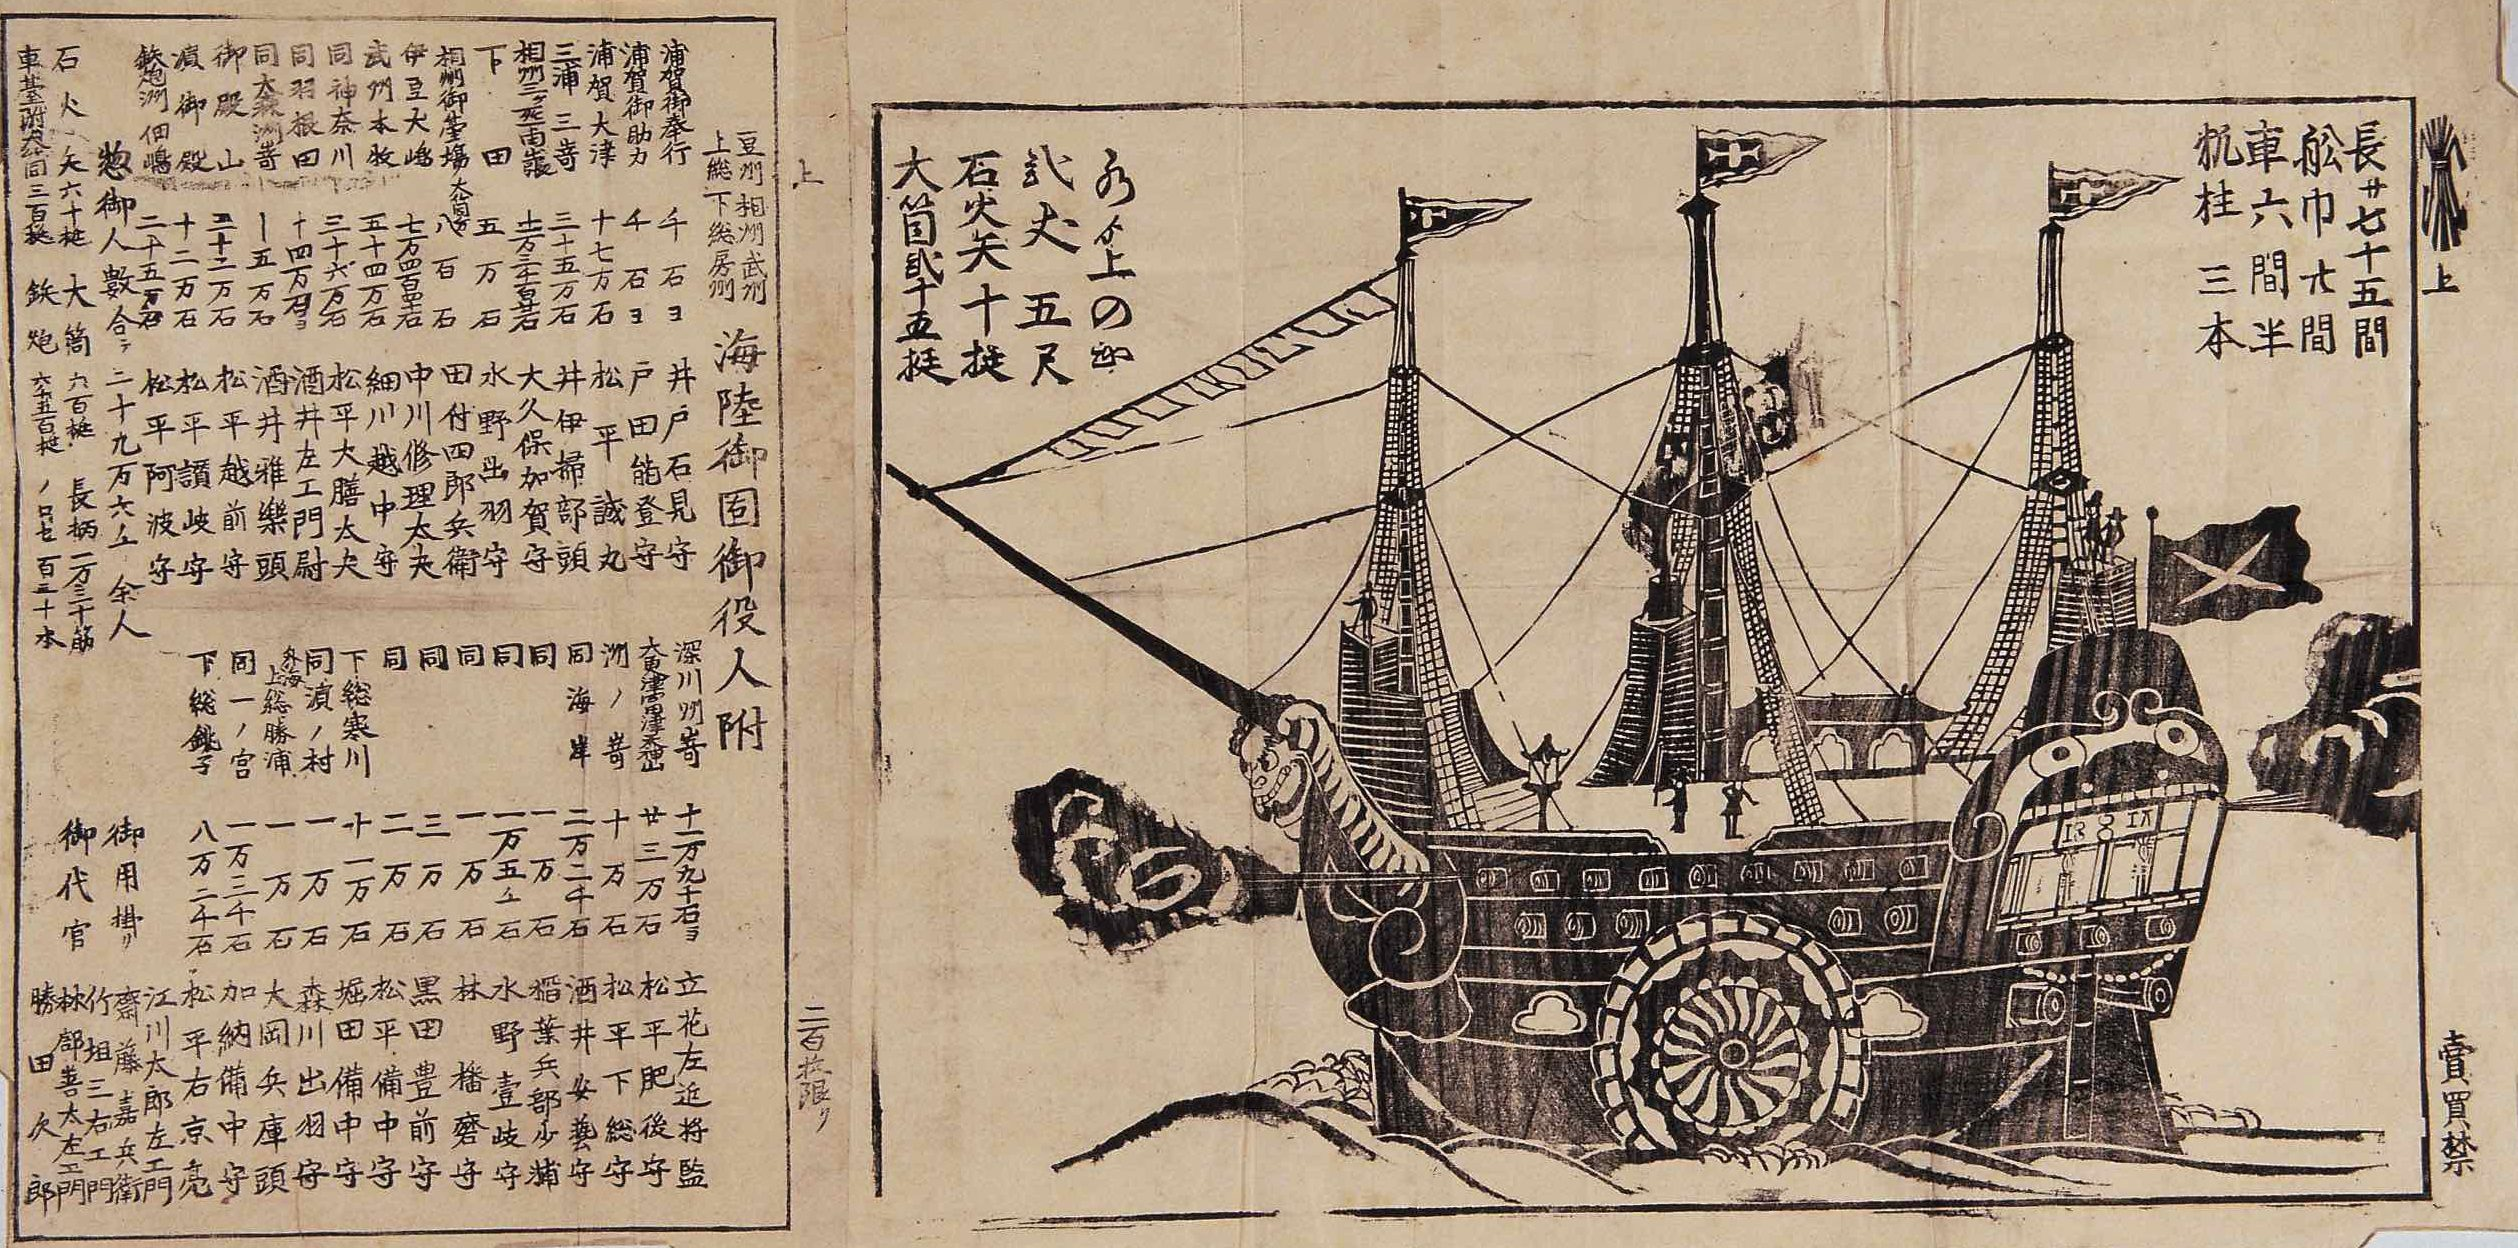 Another illustration, in black ink, of a foreign ship arriving in Edo Bay.